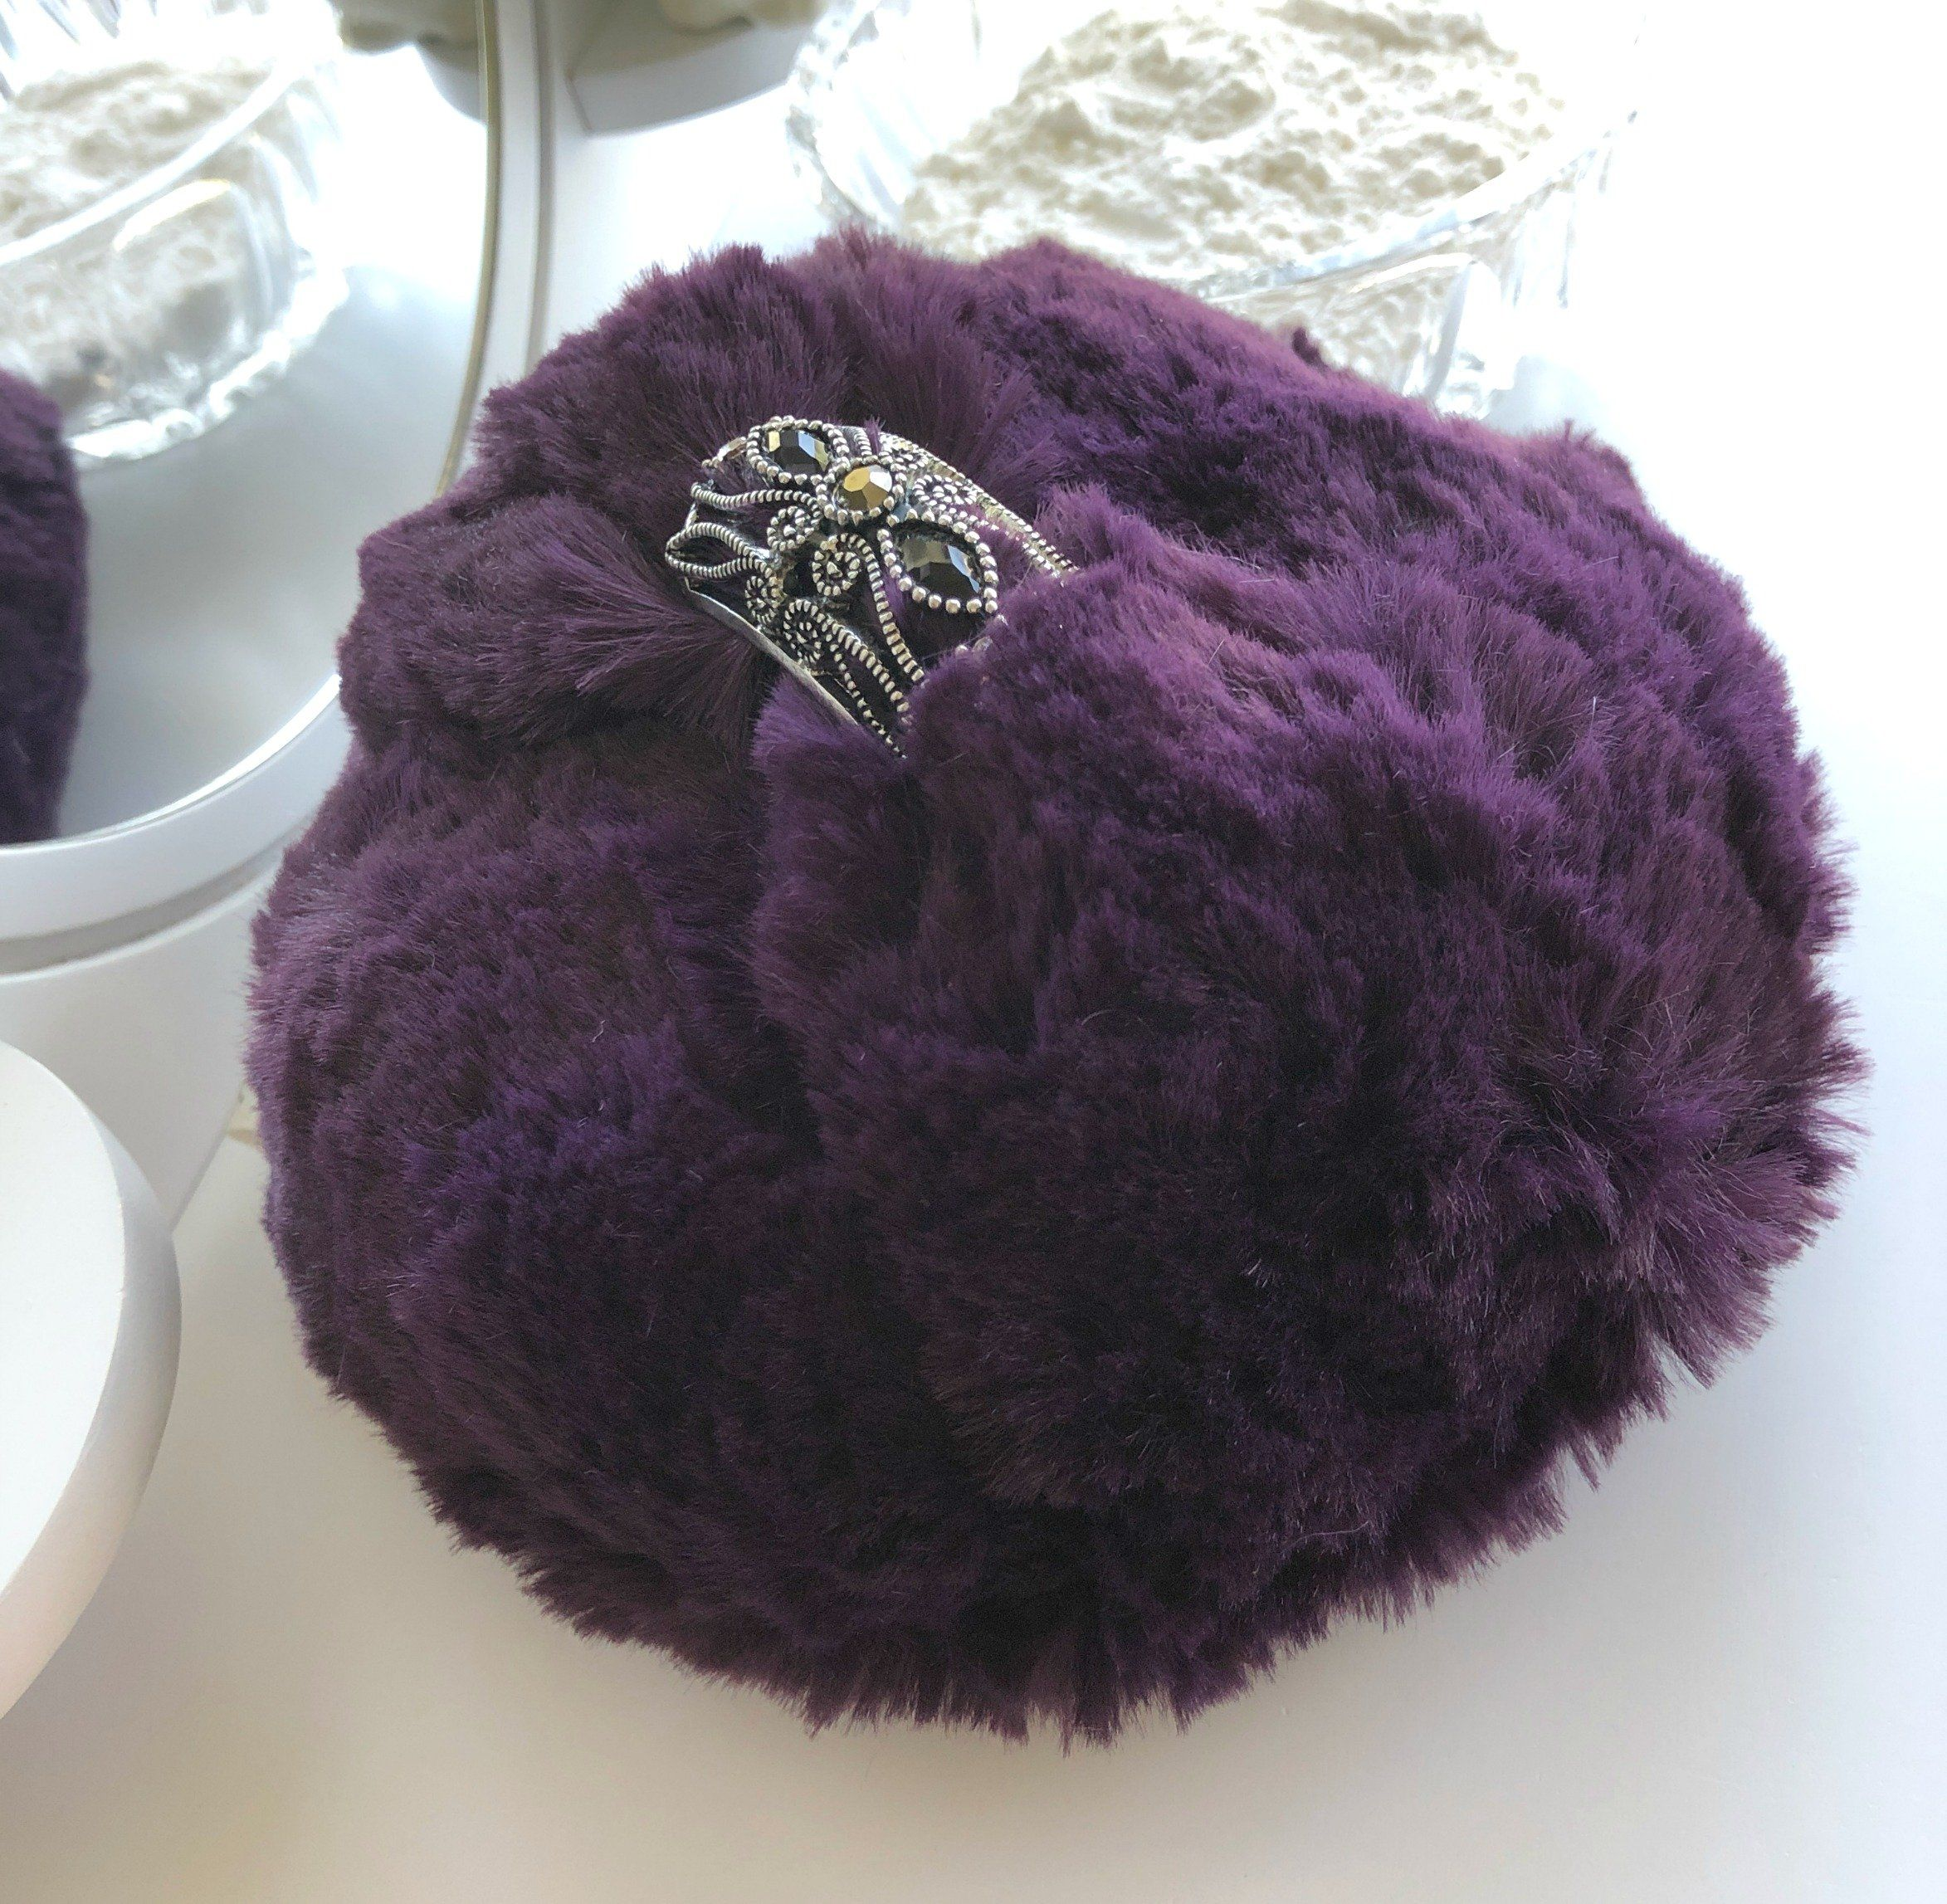 Purple Powder Puff large 5 inch pouf to apply body